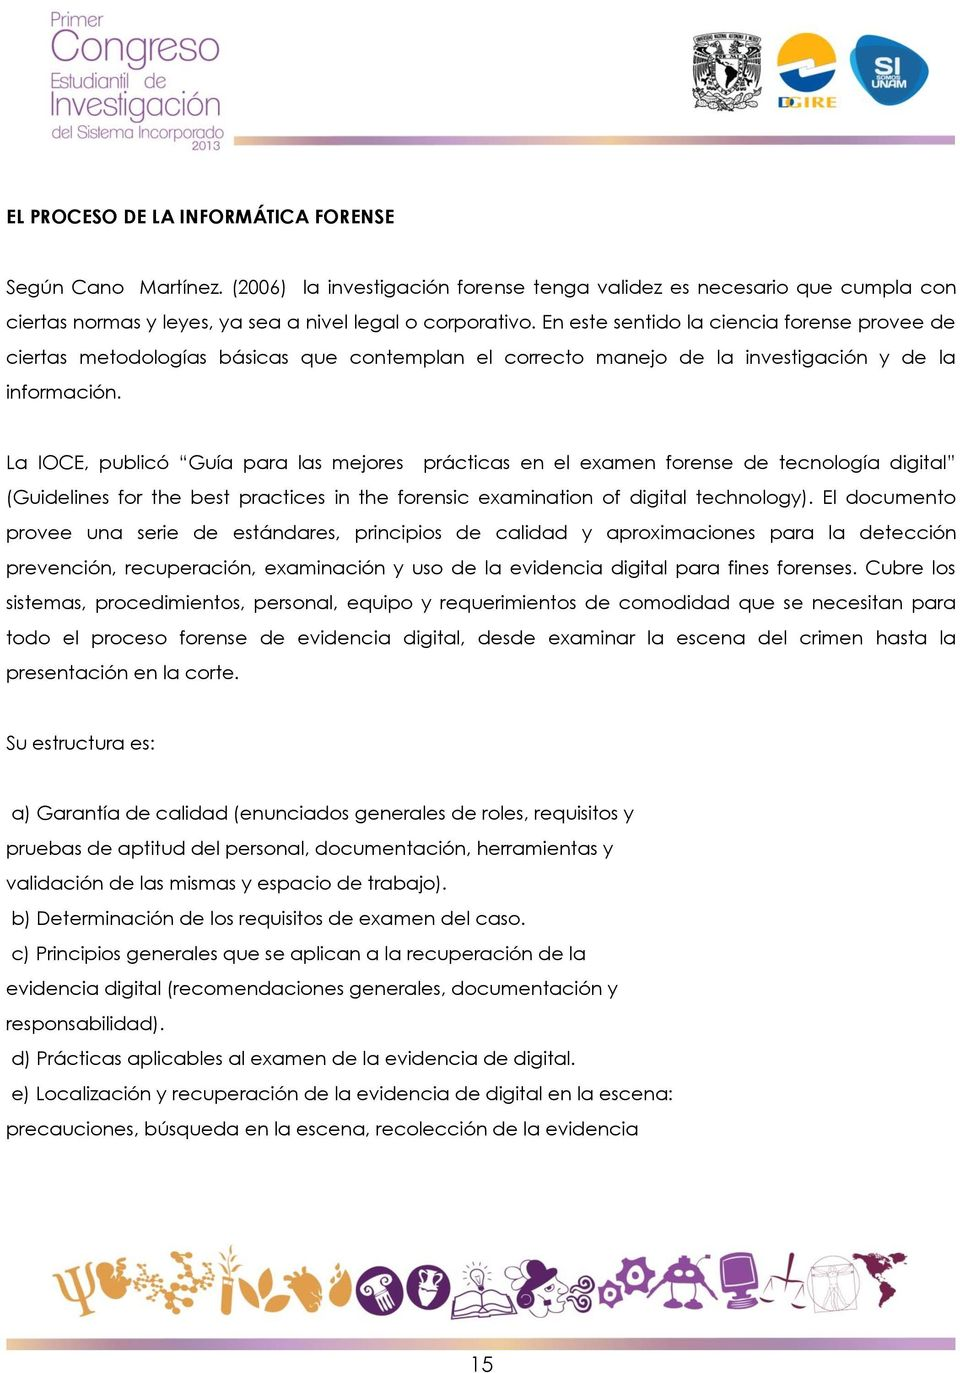 La IOCE, publicó Guía para las mejores prácticas en el examen forense de tecnología digital (Guidelines for the best practices in the forensic examination of digital technology).